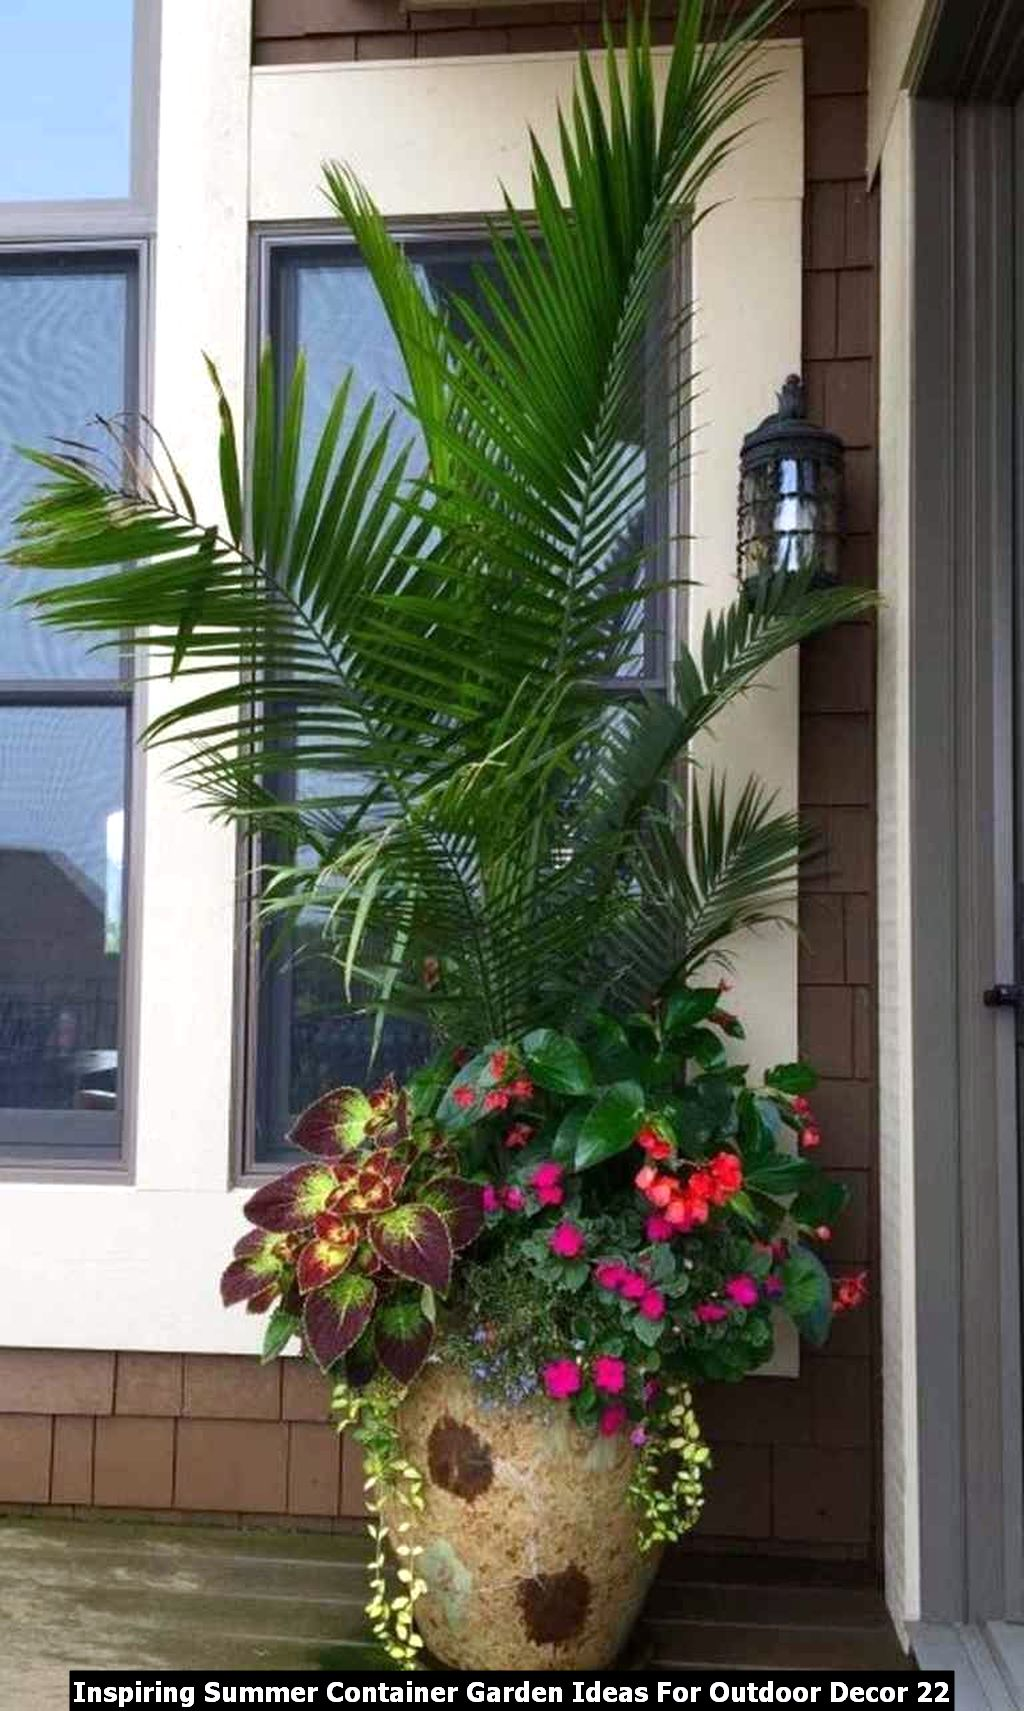 Inspiring Summer Container Garden Ideas For Outdoor Decor 22